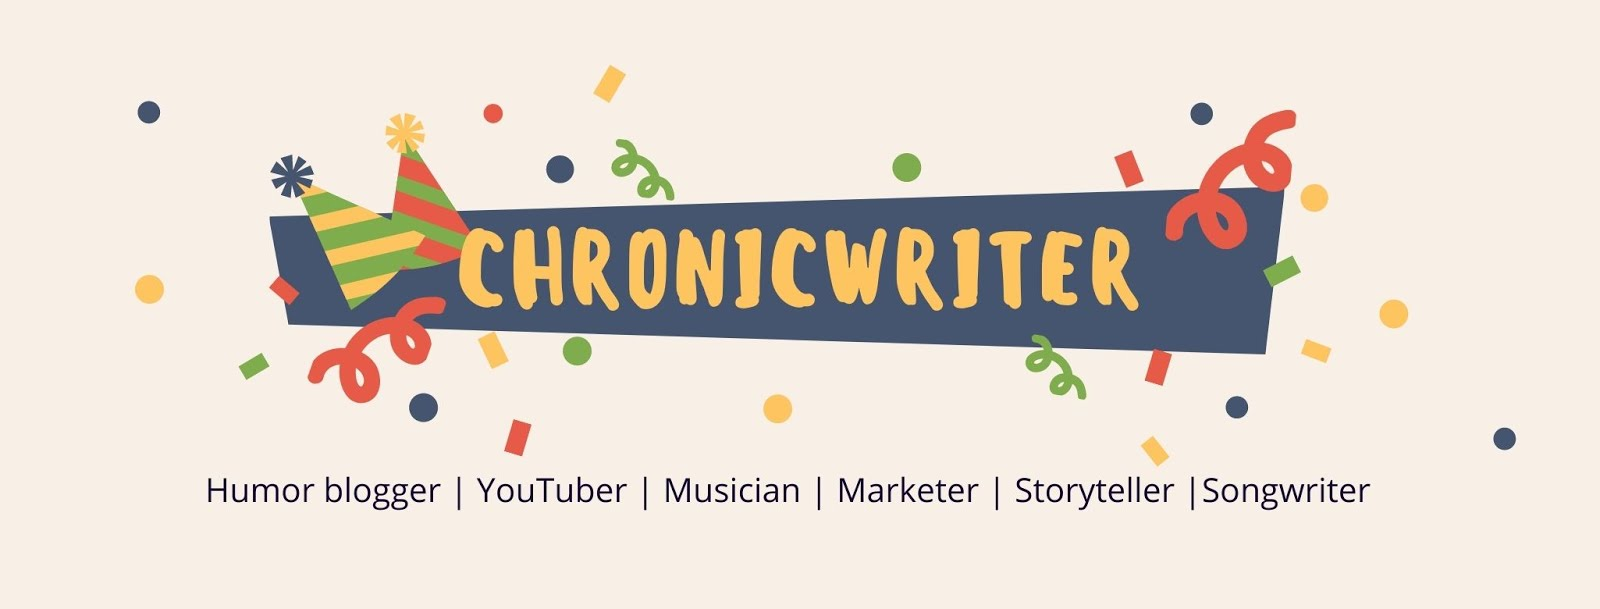 Chronicwriter